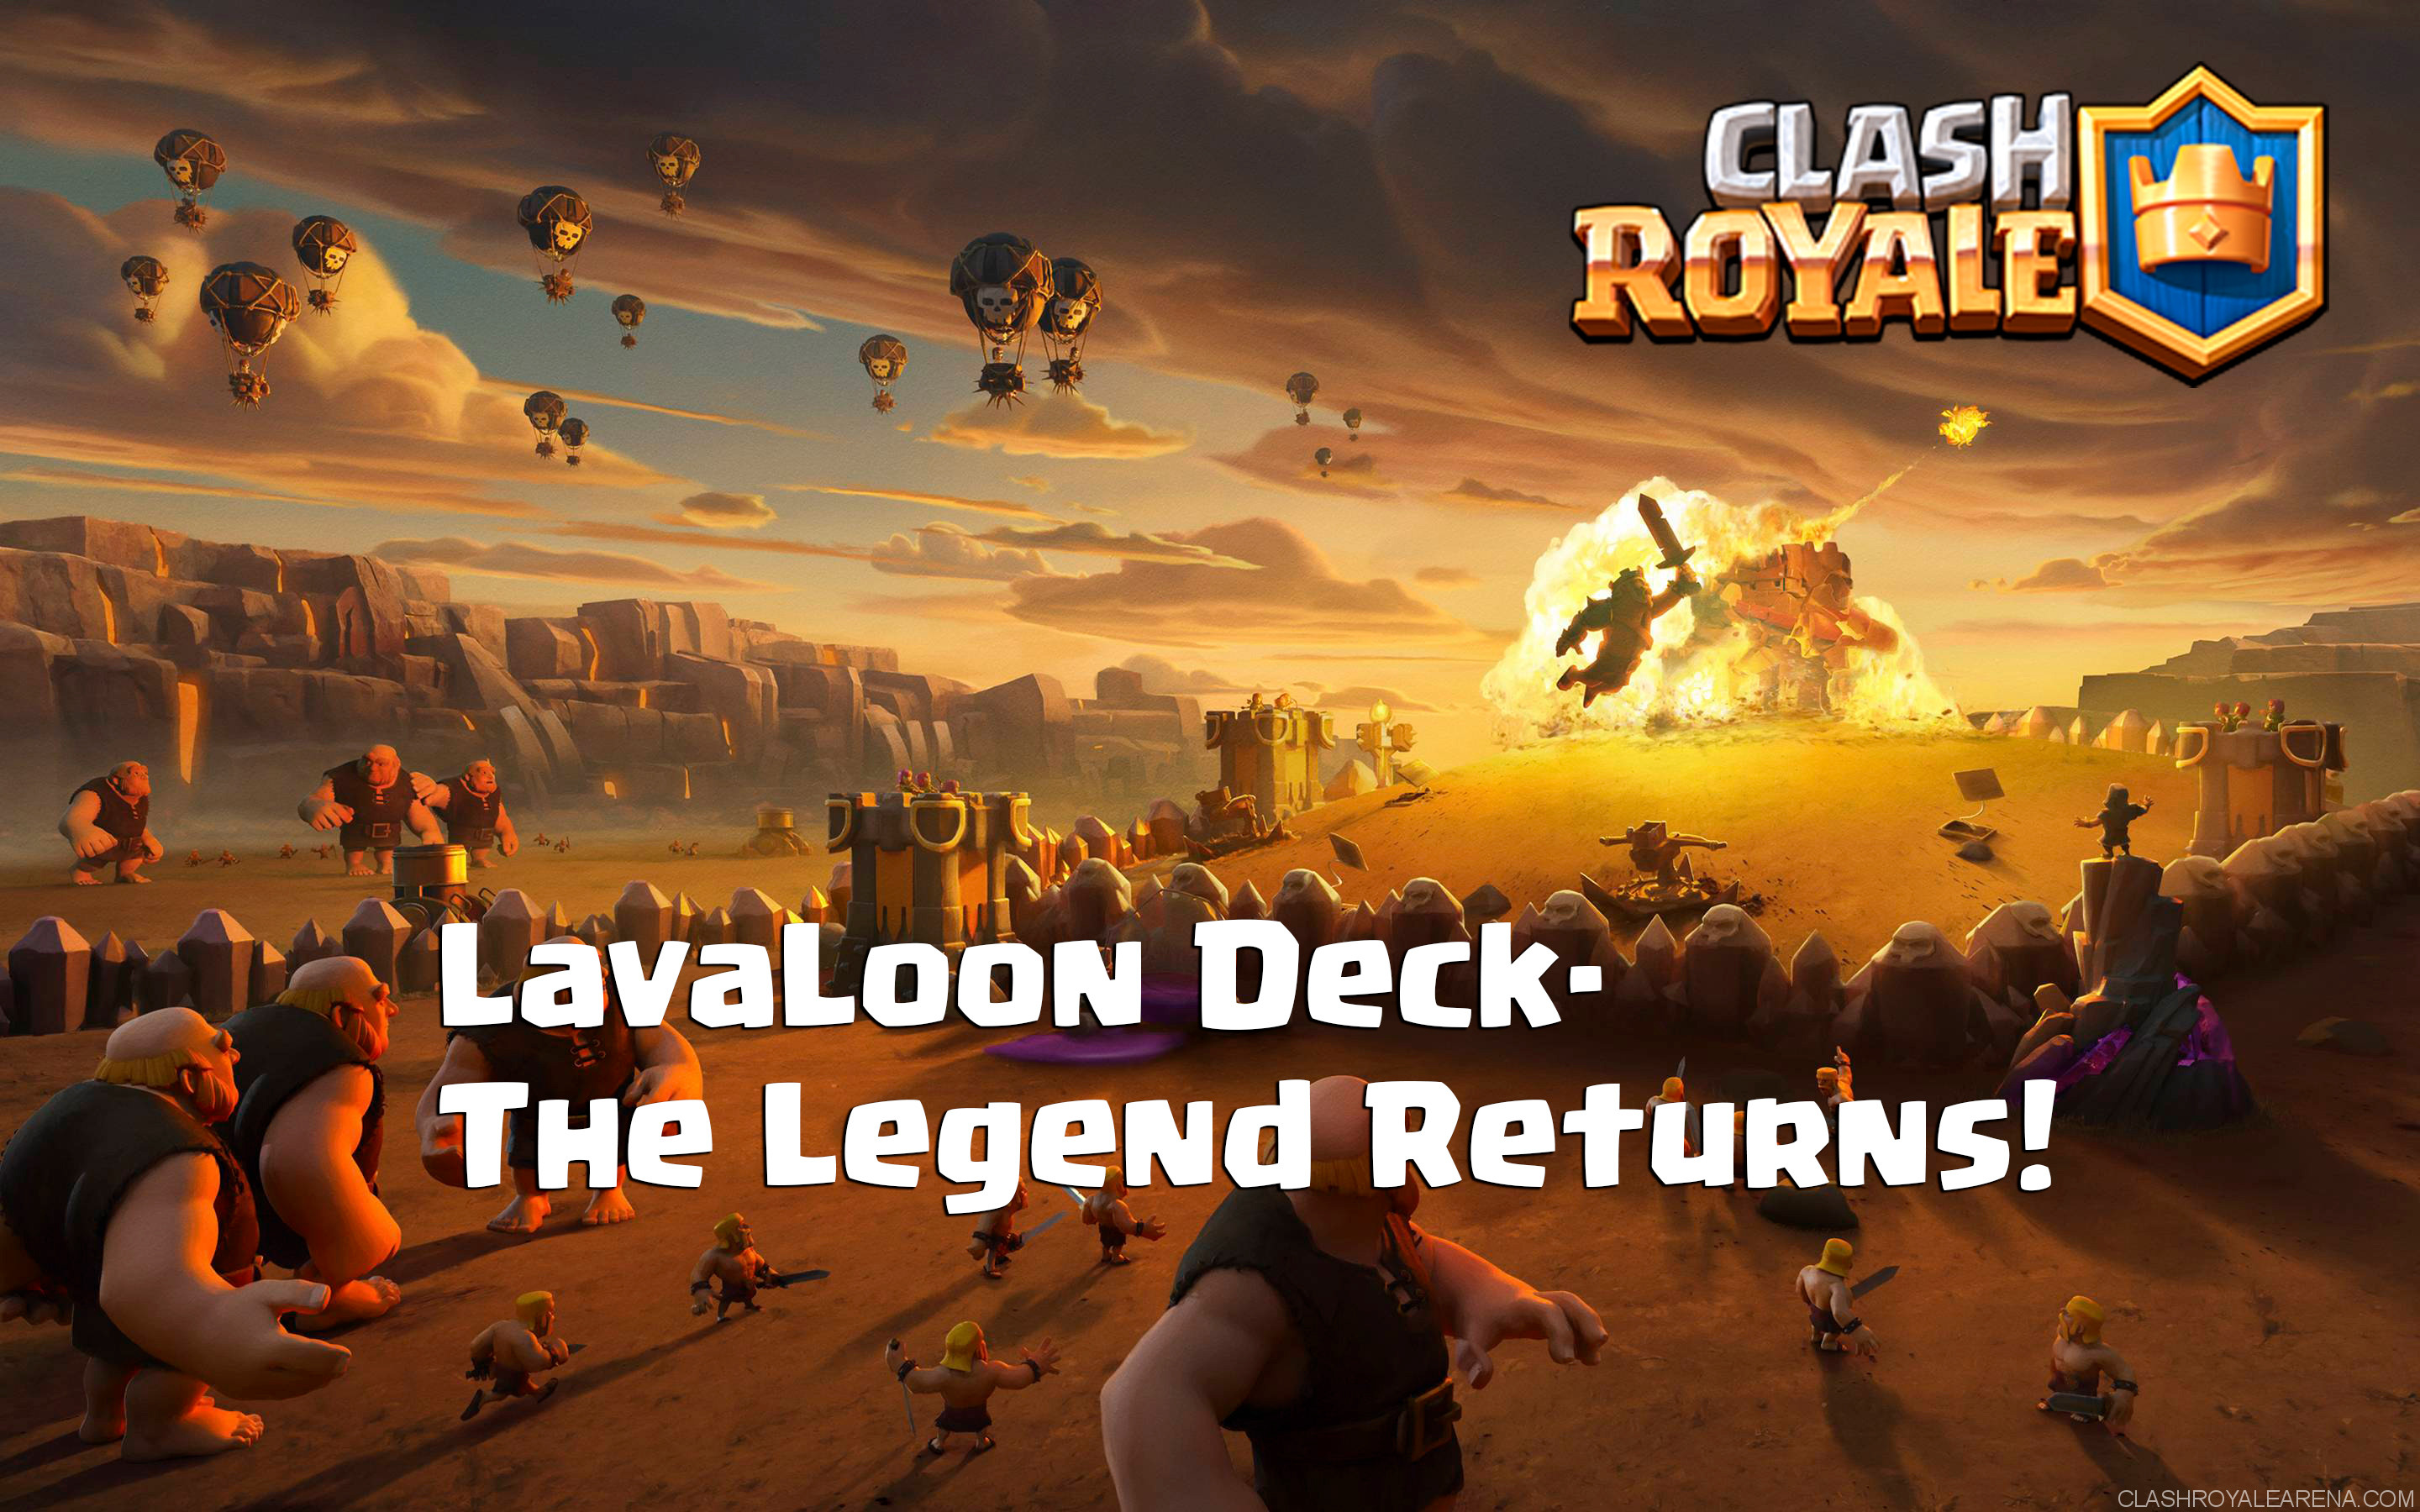 LavaLoon Deck- The Legend Returns!